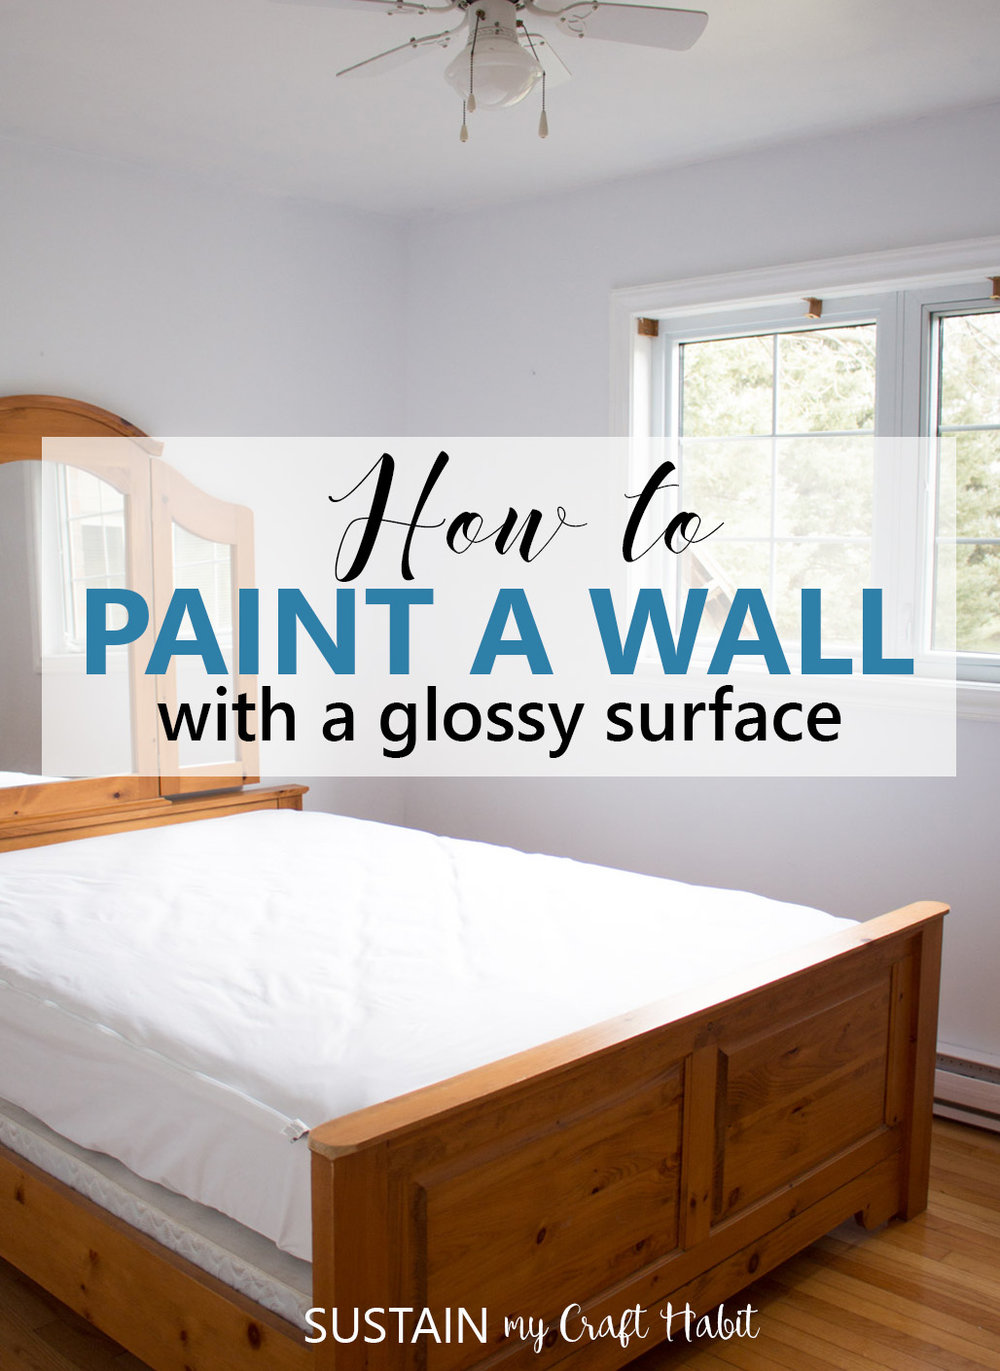 Learn how to paint a wall with a glossy surface. Great tutorial if you are using latex paint on a wall with an unknown surface finish as well as wood window and door trim.